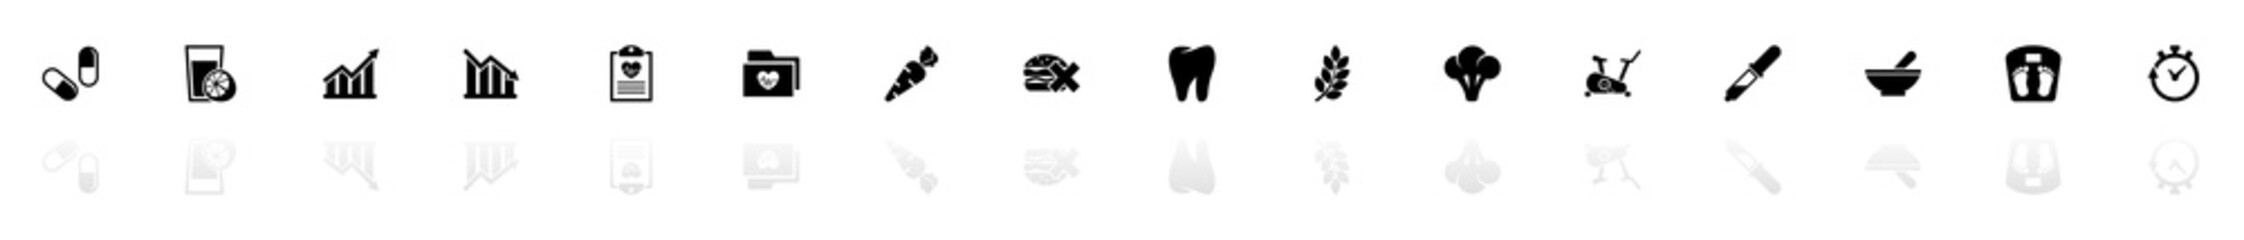 Healthy Lifestyle icons - Black horizontal Illustration symbol on White Background with a mirror Shadow reflection. Flat Vector Icon.